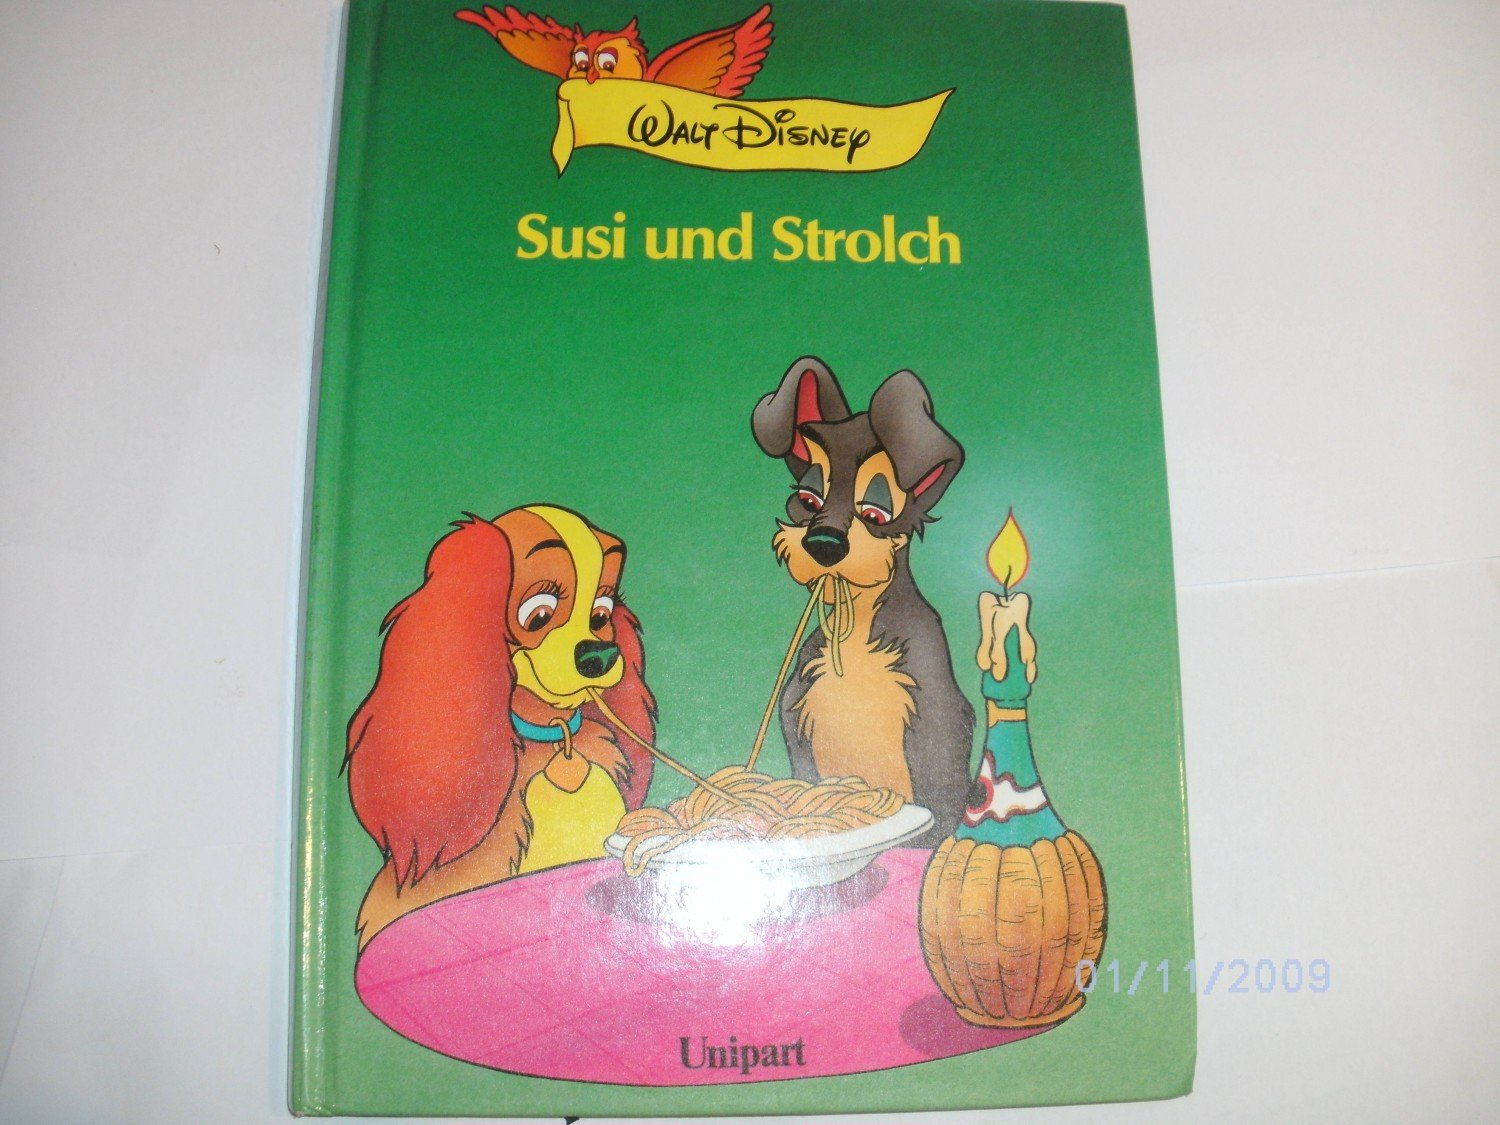 susi und strolch wald disney buch gebraucht kaufen. Black Bedroom Furniture Sets. Home Design Ideas